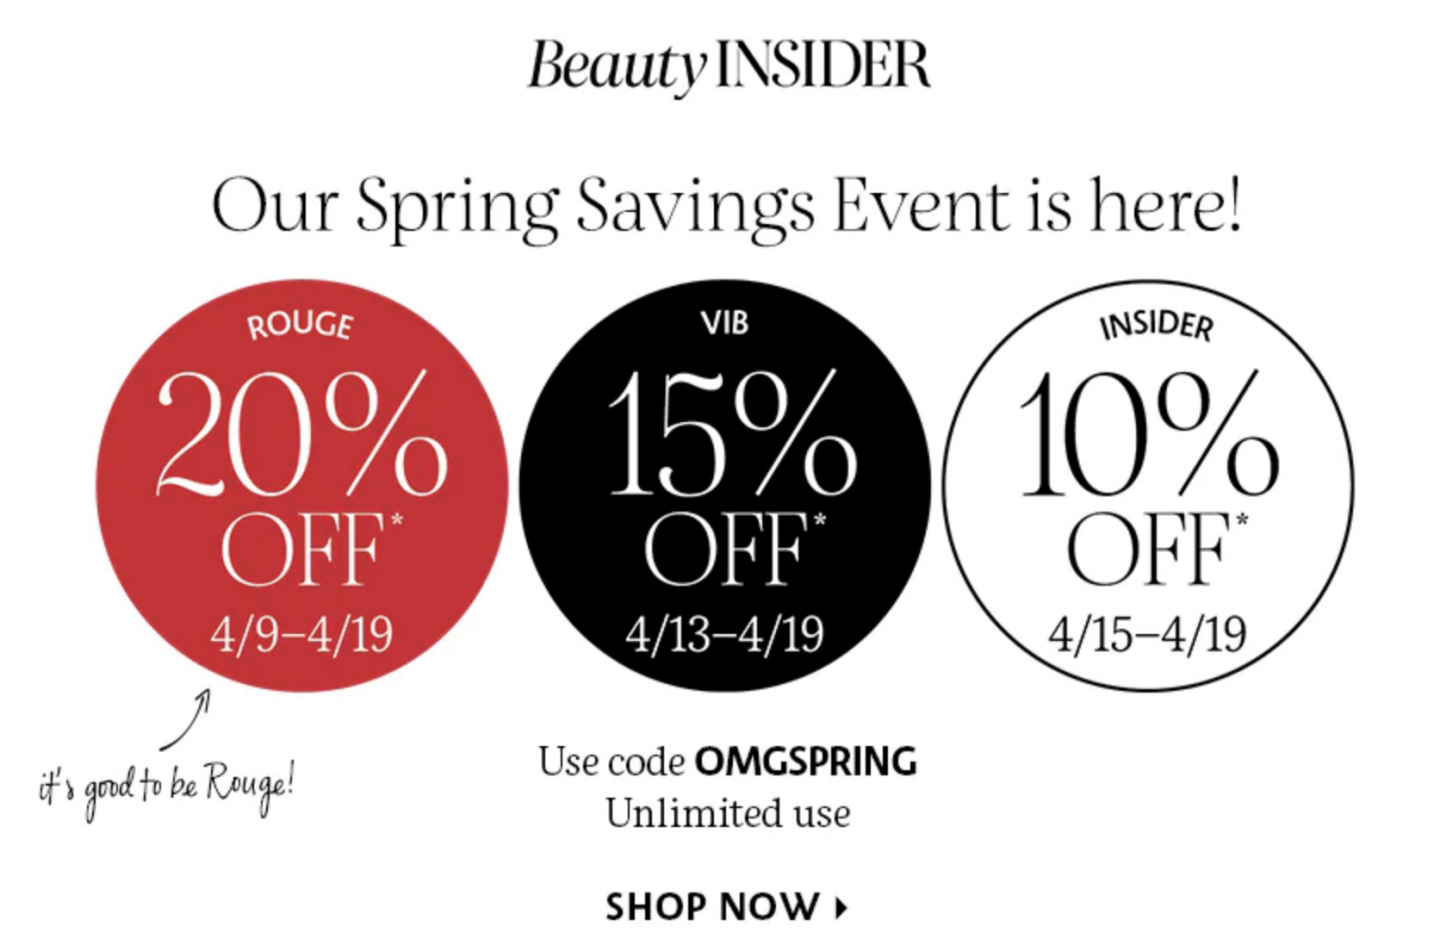 Sephora Spring Savings Event What To Plurge on.